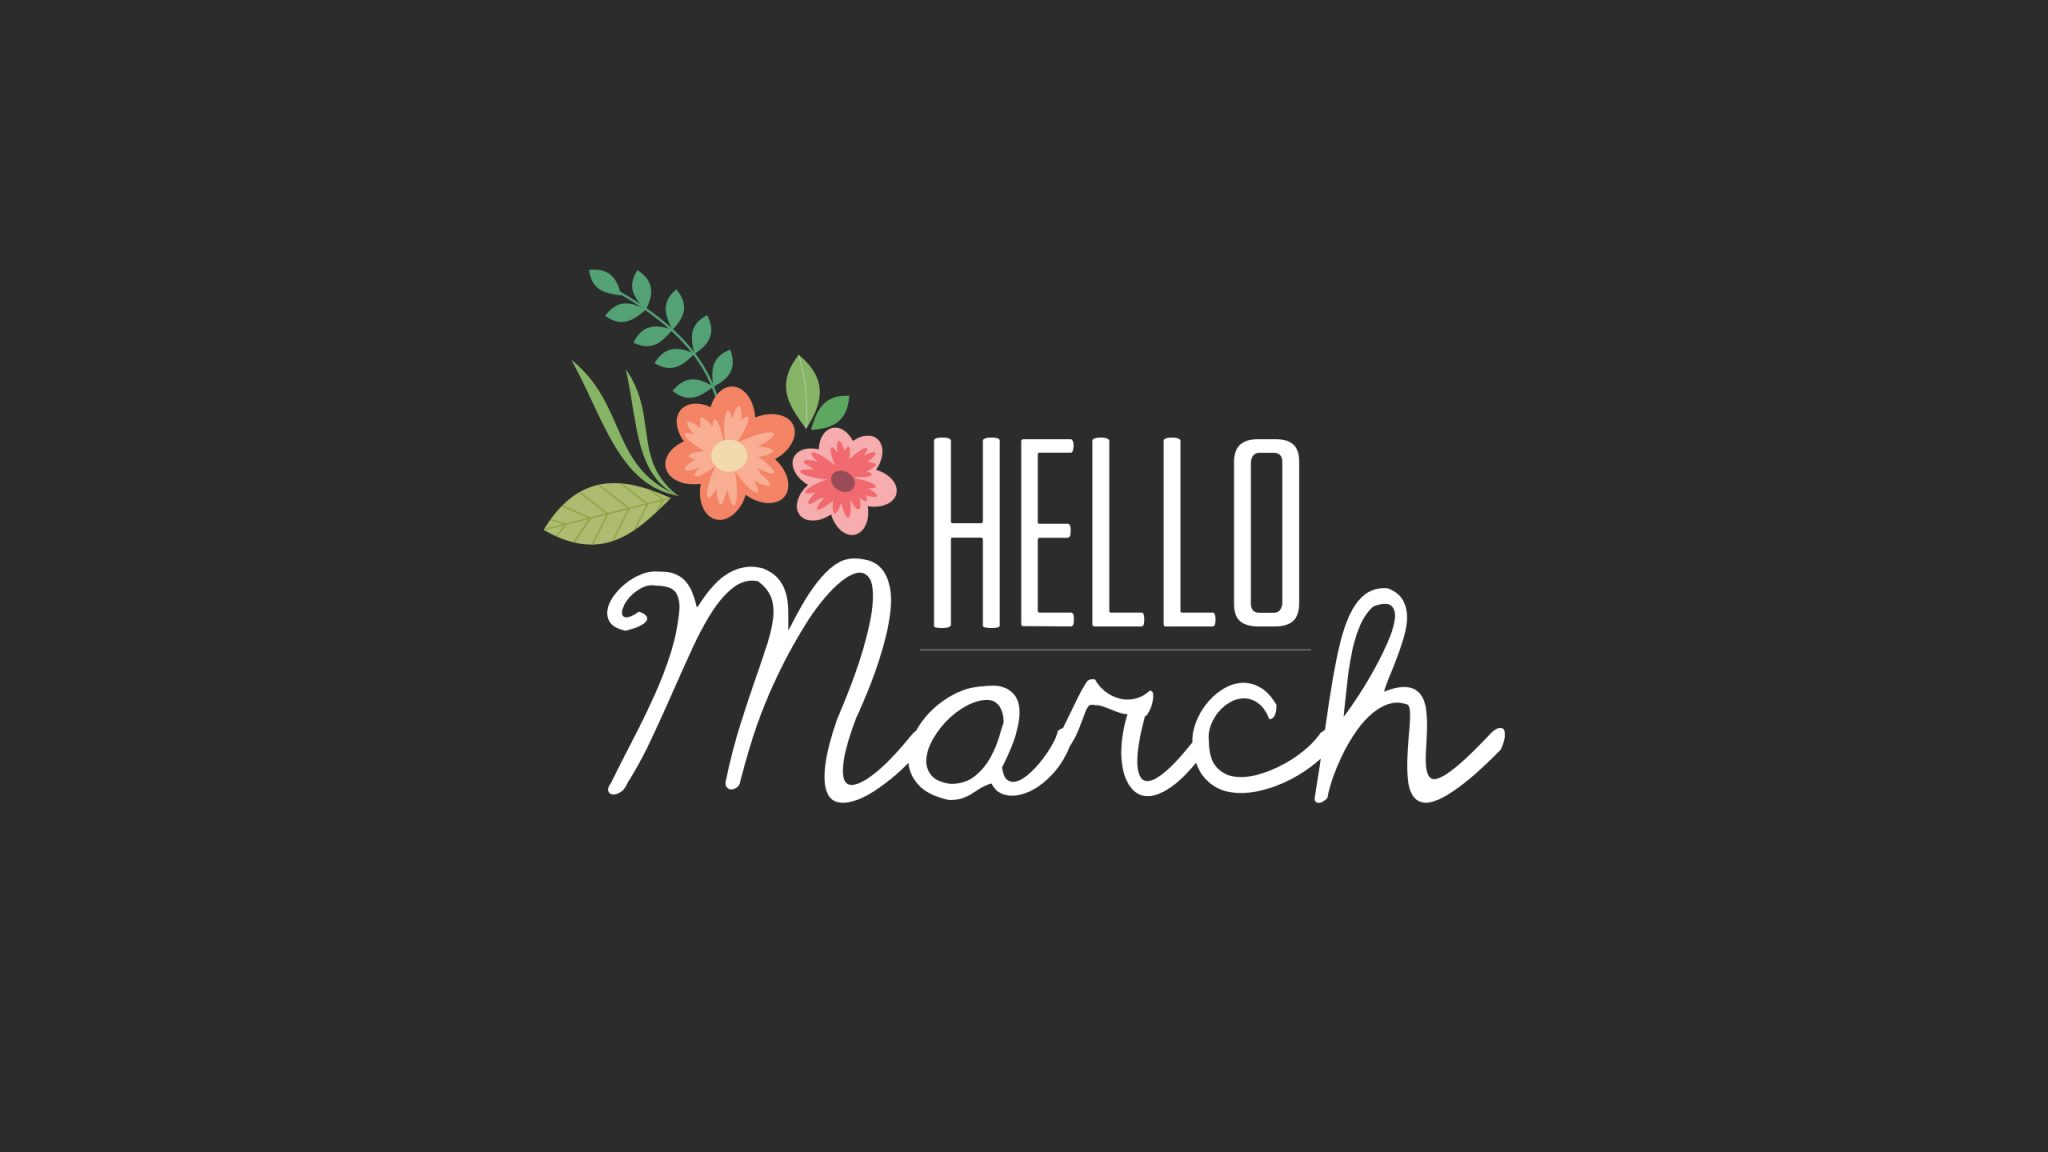 Images for Hello March